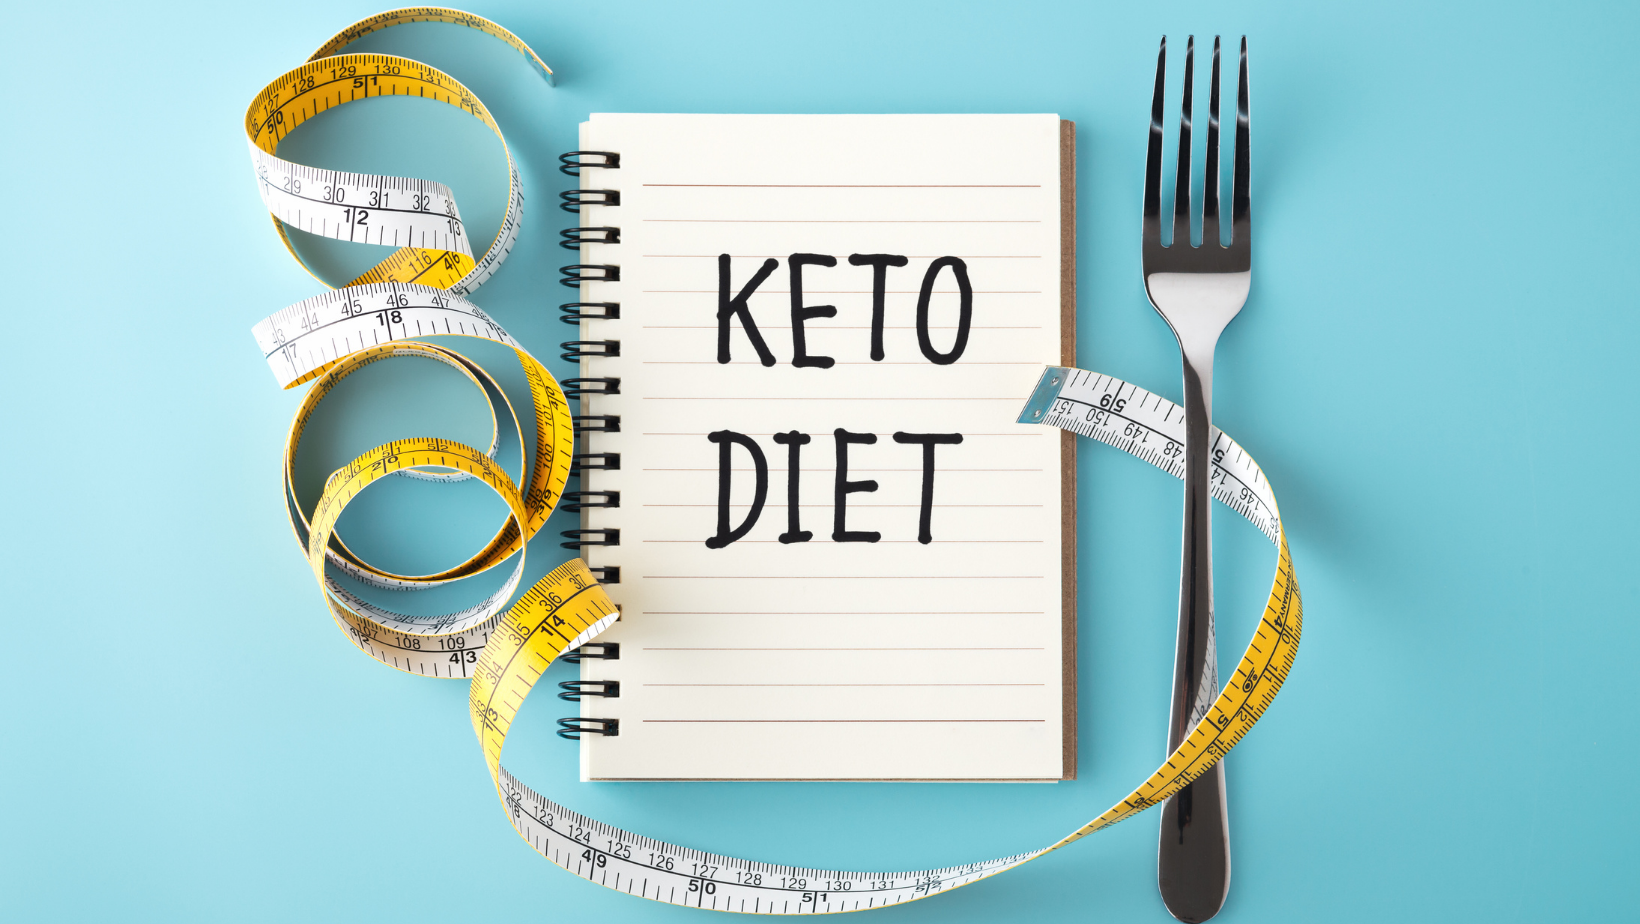 Discover The List of Foods For Keto Diet